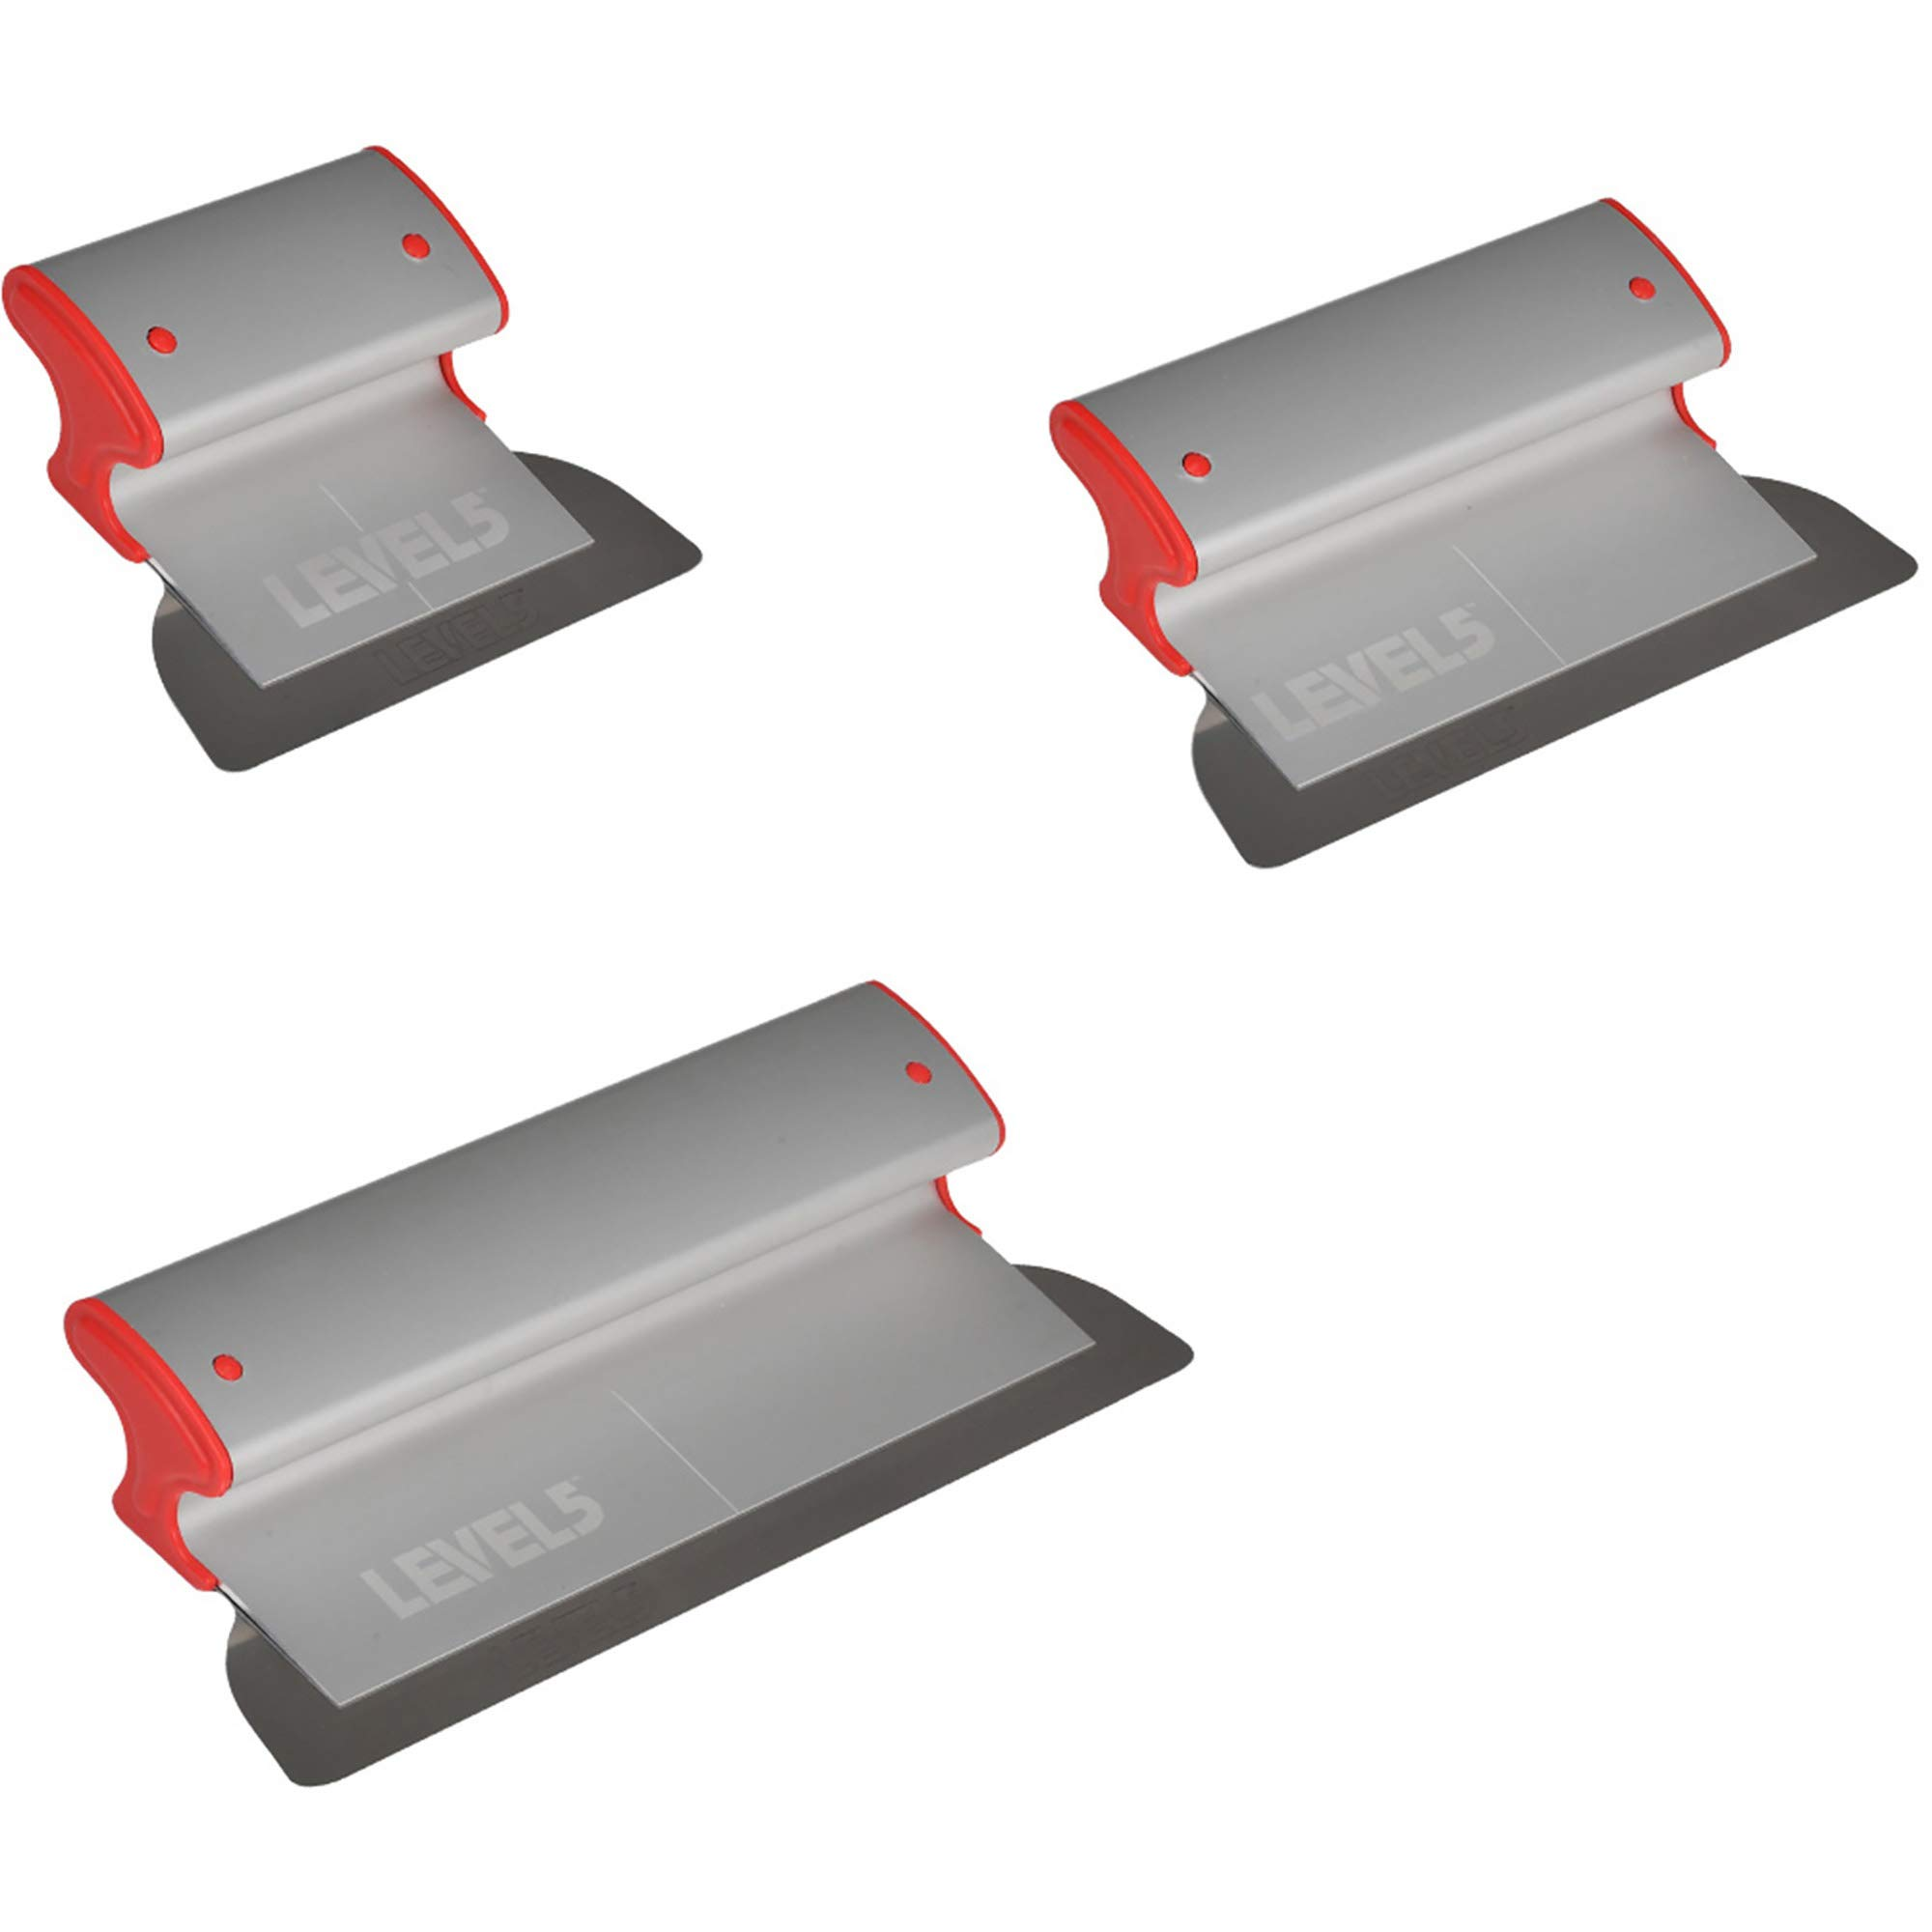 Drywall Skimming Blade Set - 7'', 10'' & 14'' Blades   LEVEL5   Pro-Grade   Extruded Aluminum & European Stainless Steel Construction   High-Impact End Caps   5-442